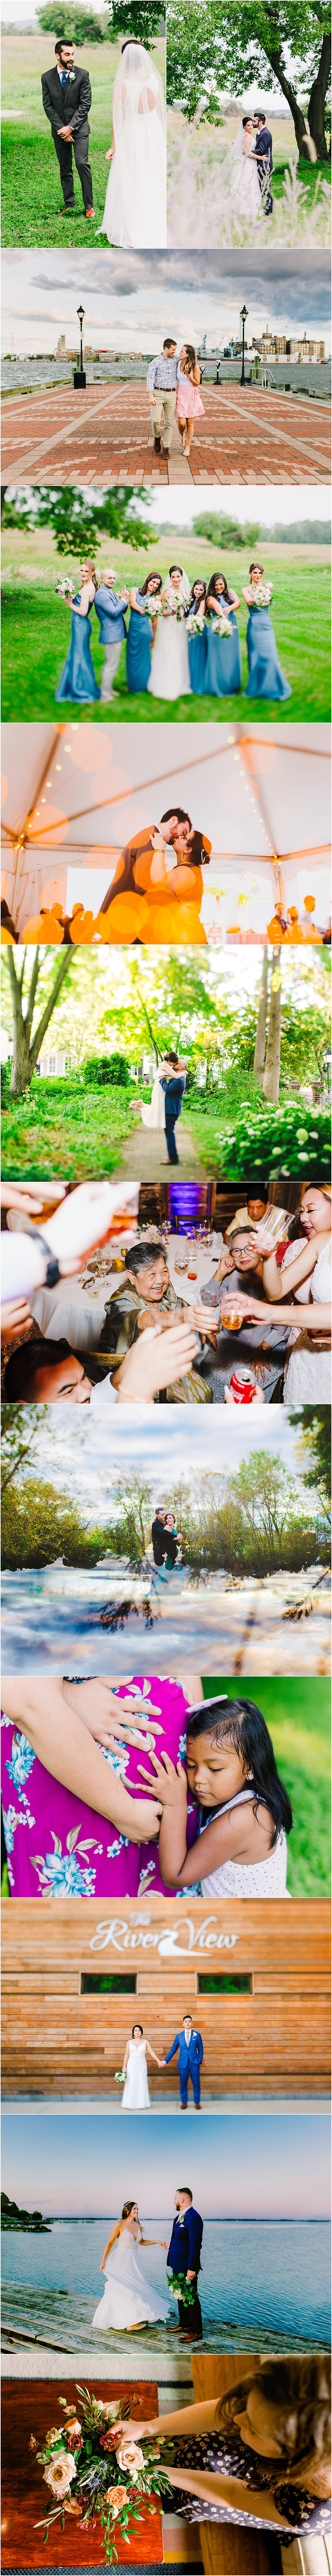 Best maryland wedding photographer, Katherine Elizabeth Photography. Joyful and elegant wedding portraits in Frederick, Annapolis, Baltimore, Virginia and beyond